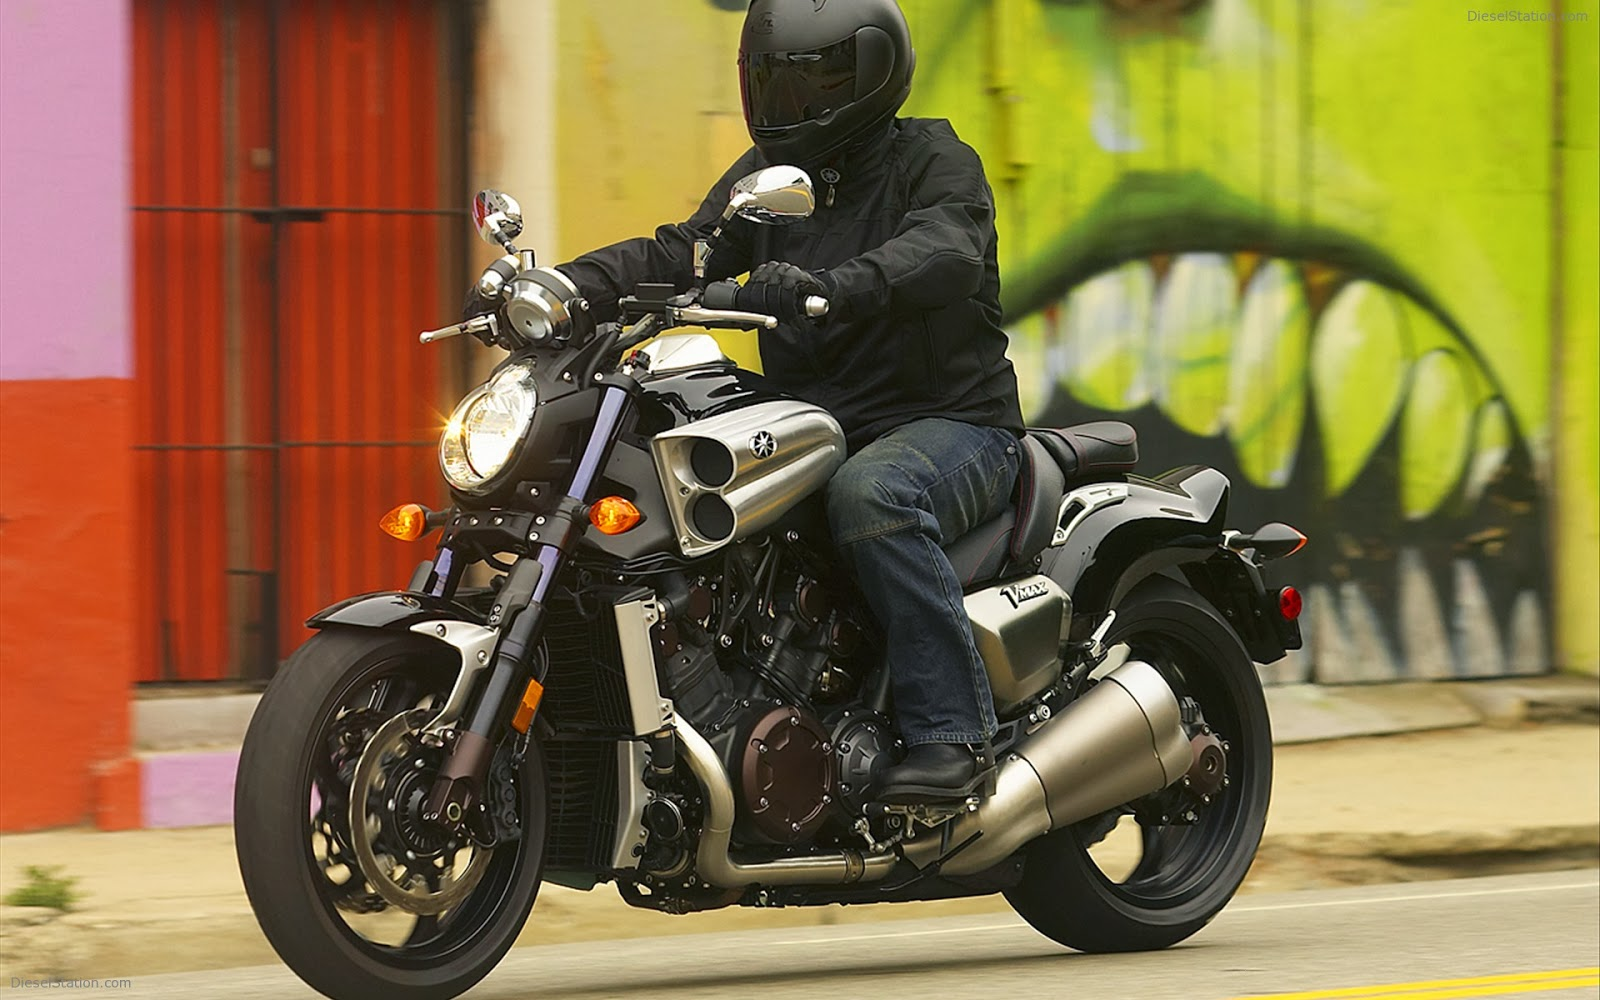 yamaha vmax hd wallpapers pictures images hd wallpapers blog. Black Bedroom Furniture Sets. Home Design Ideas